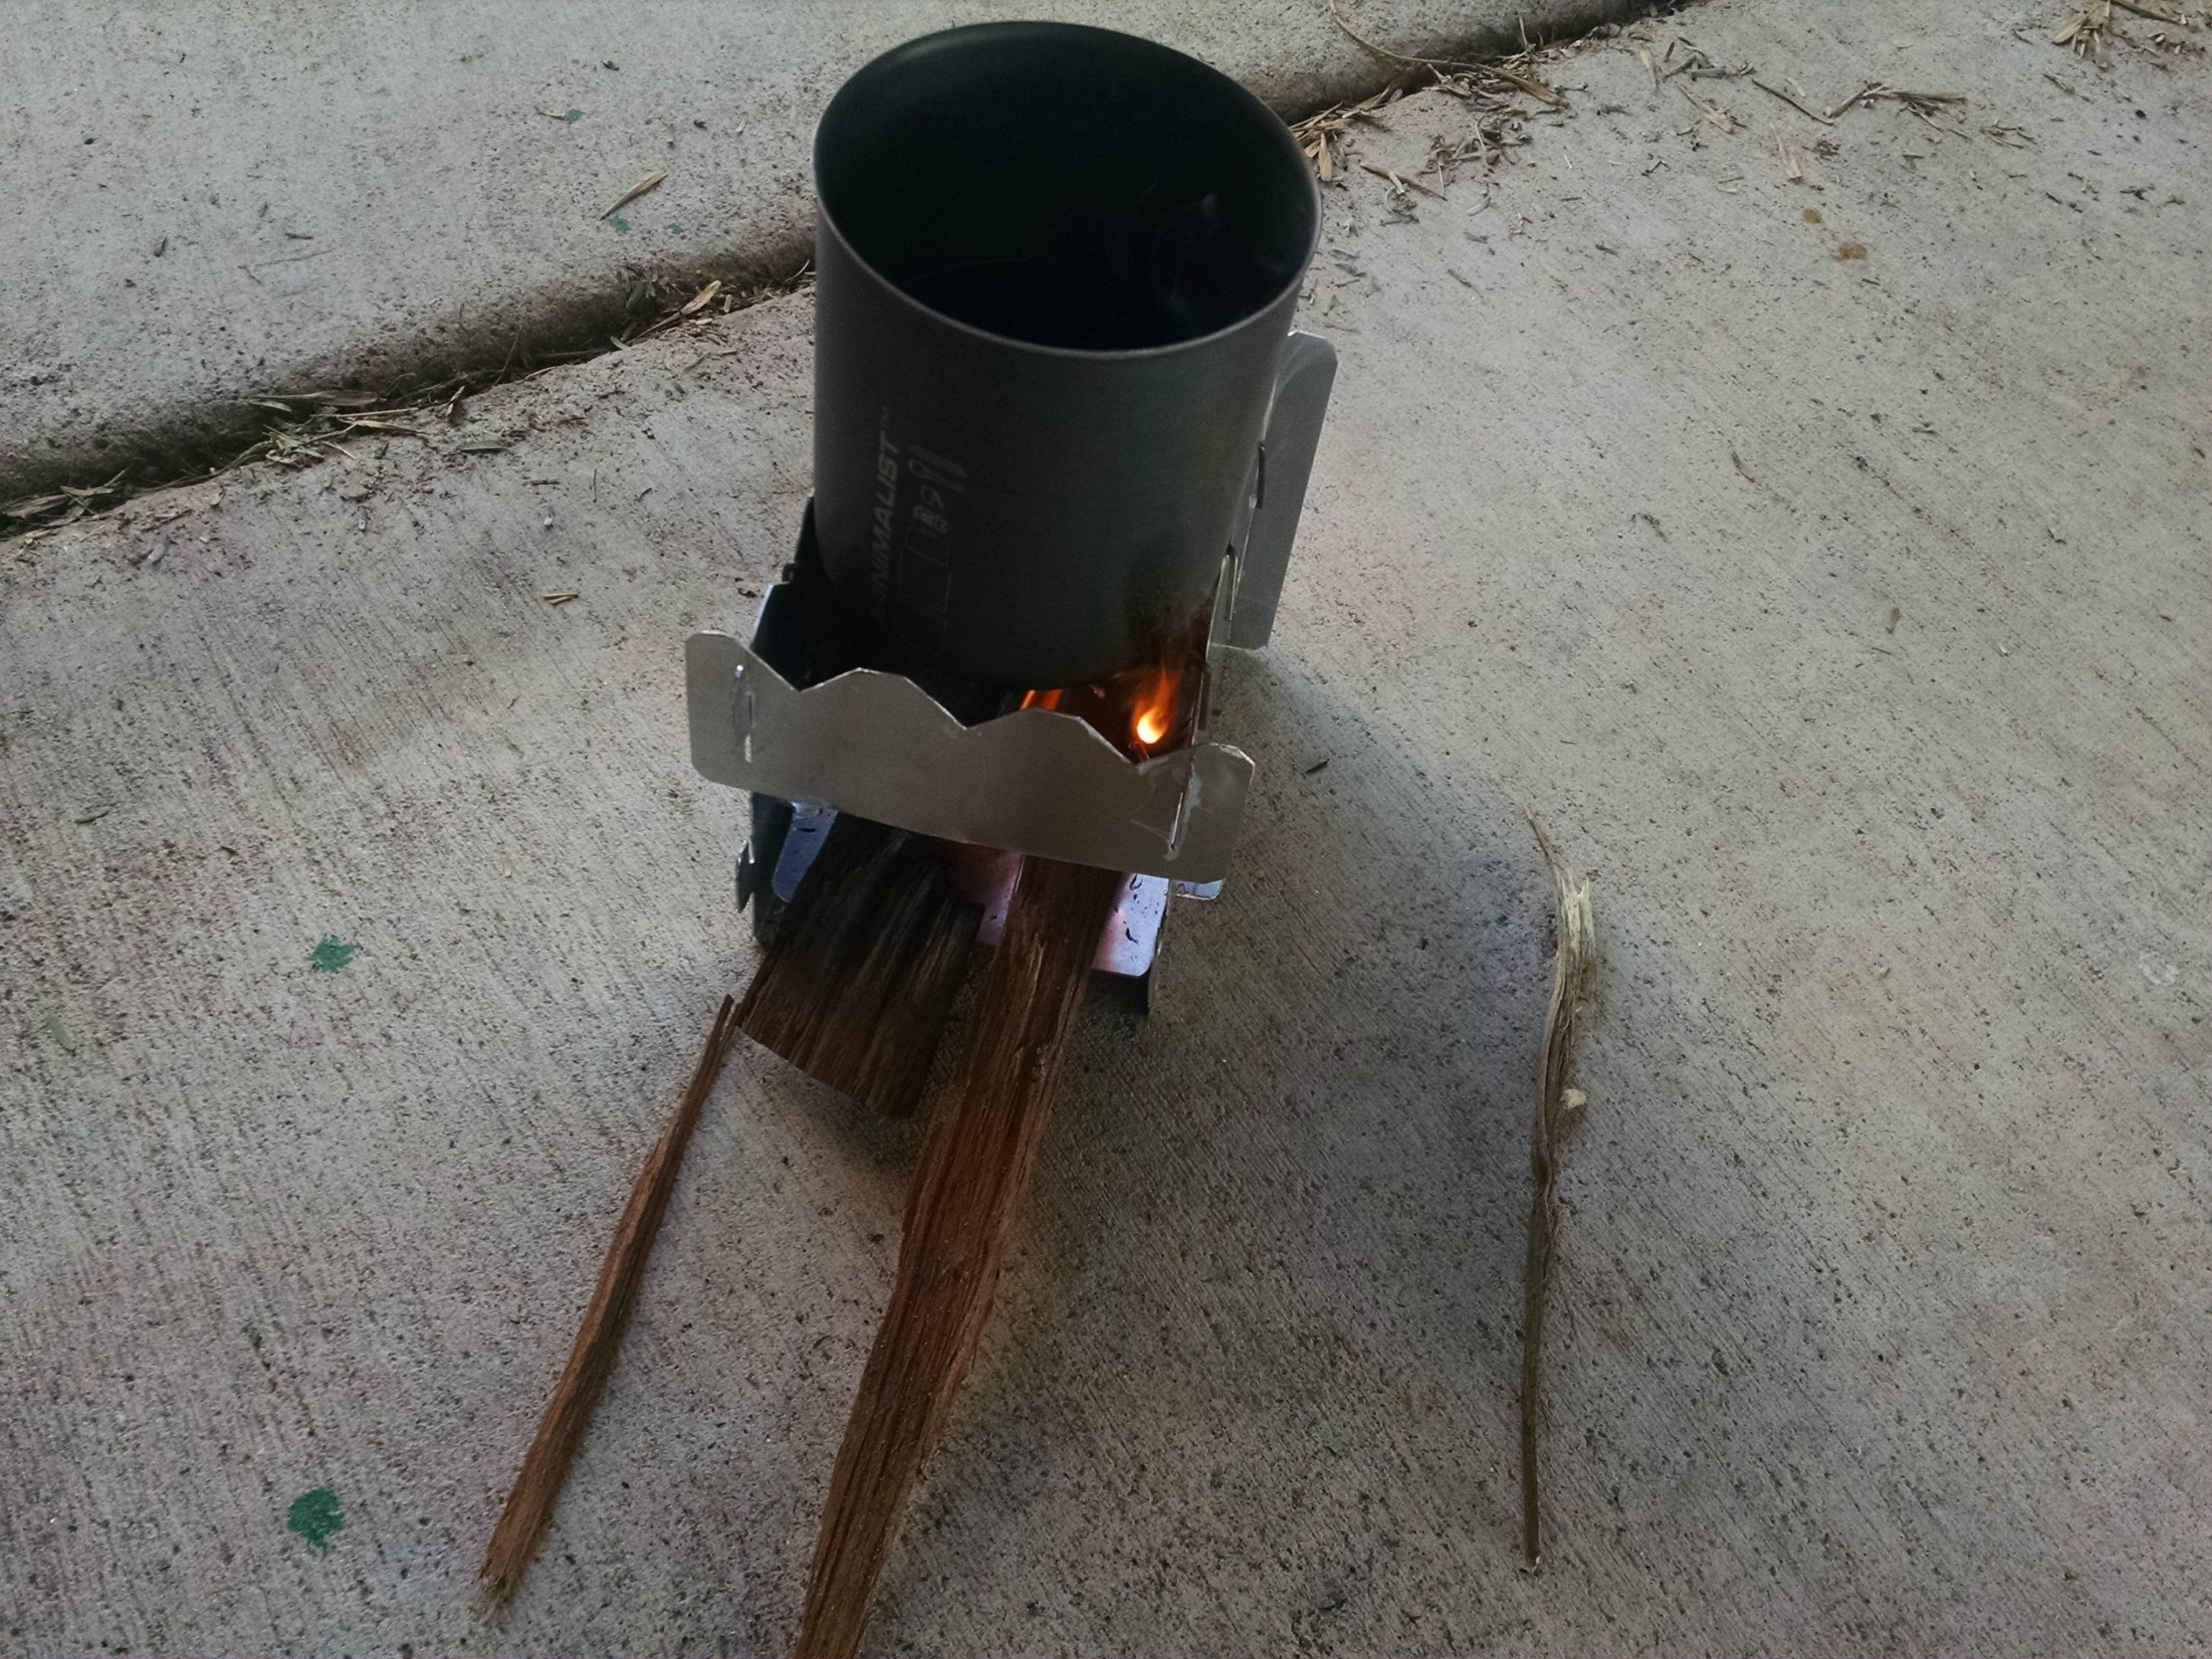 I Made A Simple Homemade Wood Stove To Take Backpacking With Me